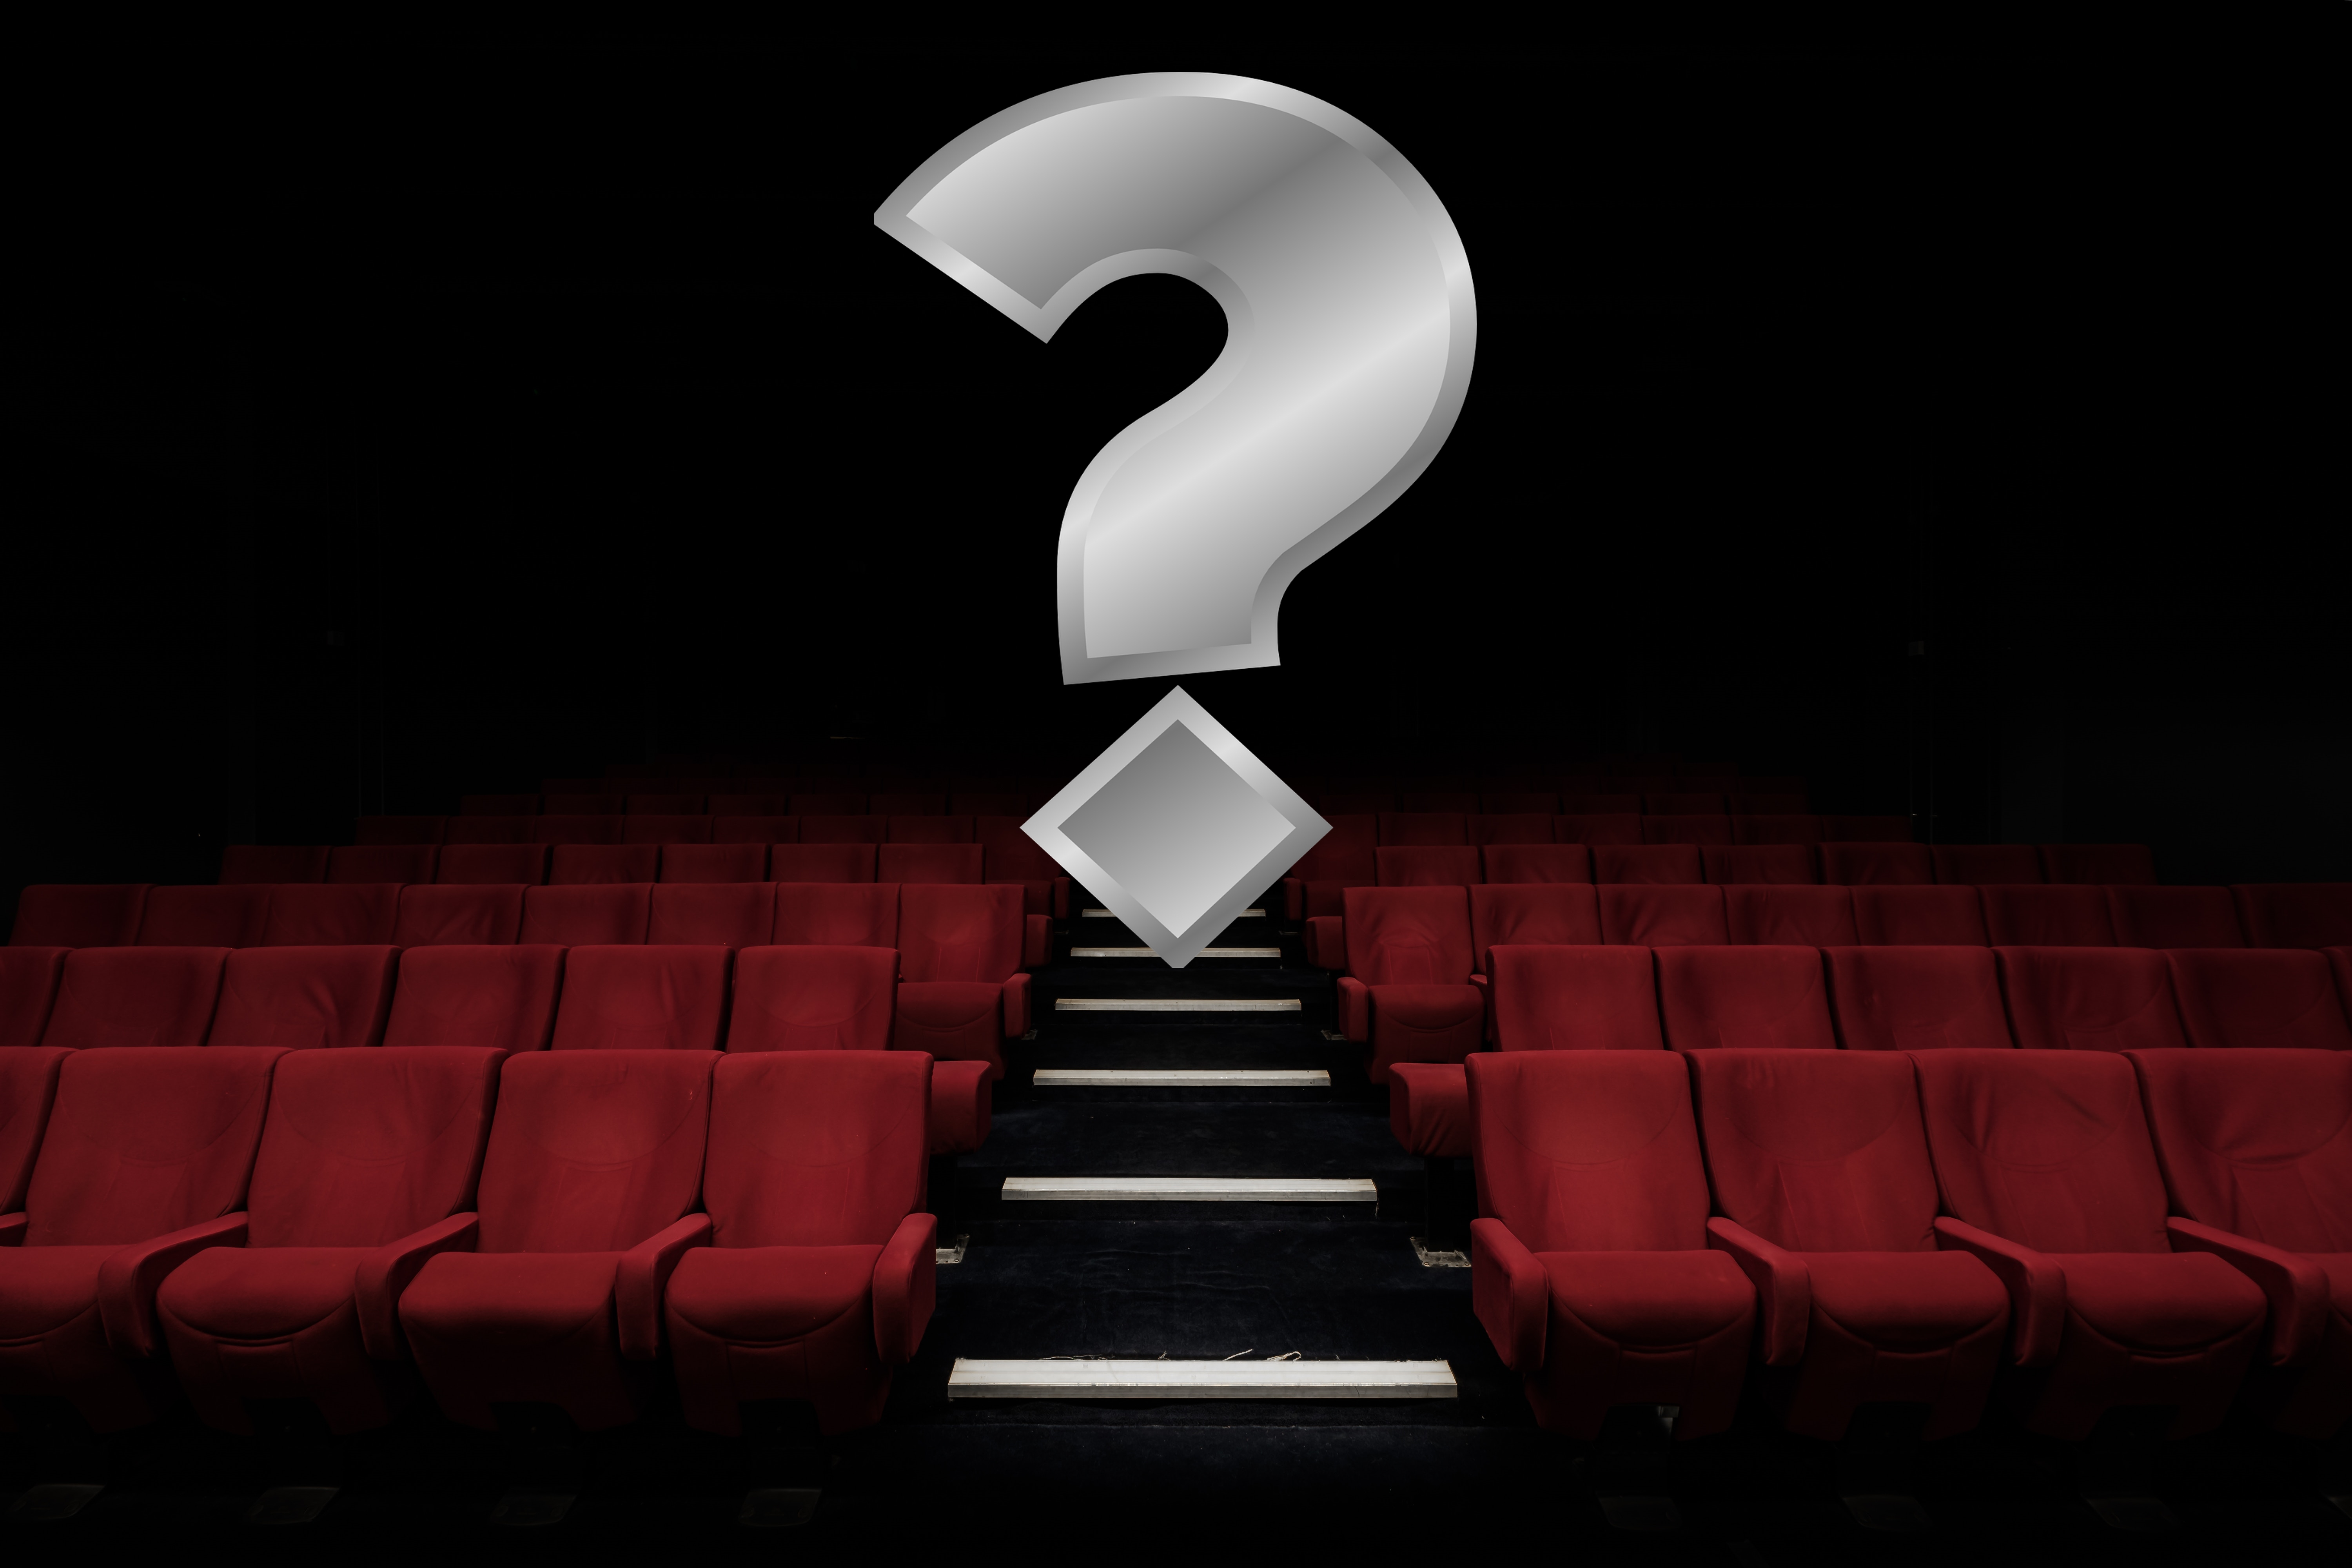 Movie-goers, this one's for you. You would never guess the right actor of character #11 in this trivia